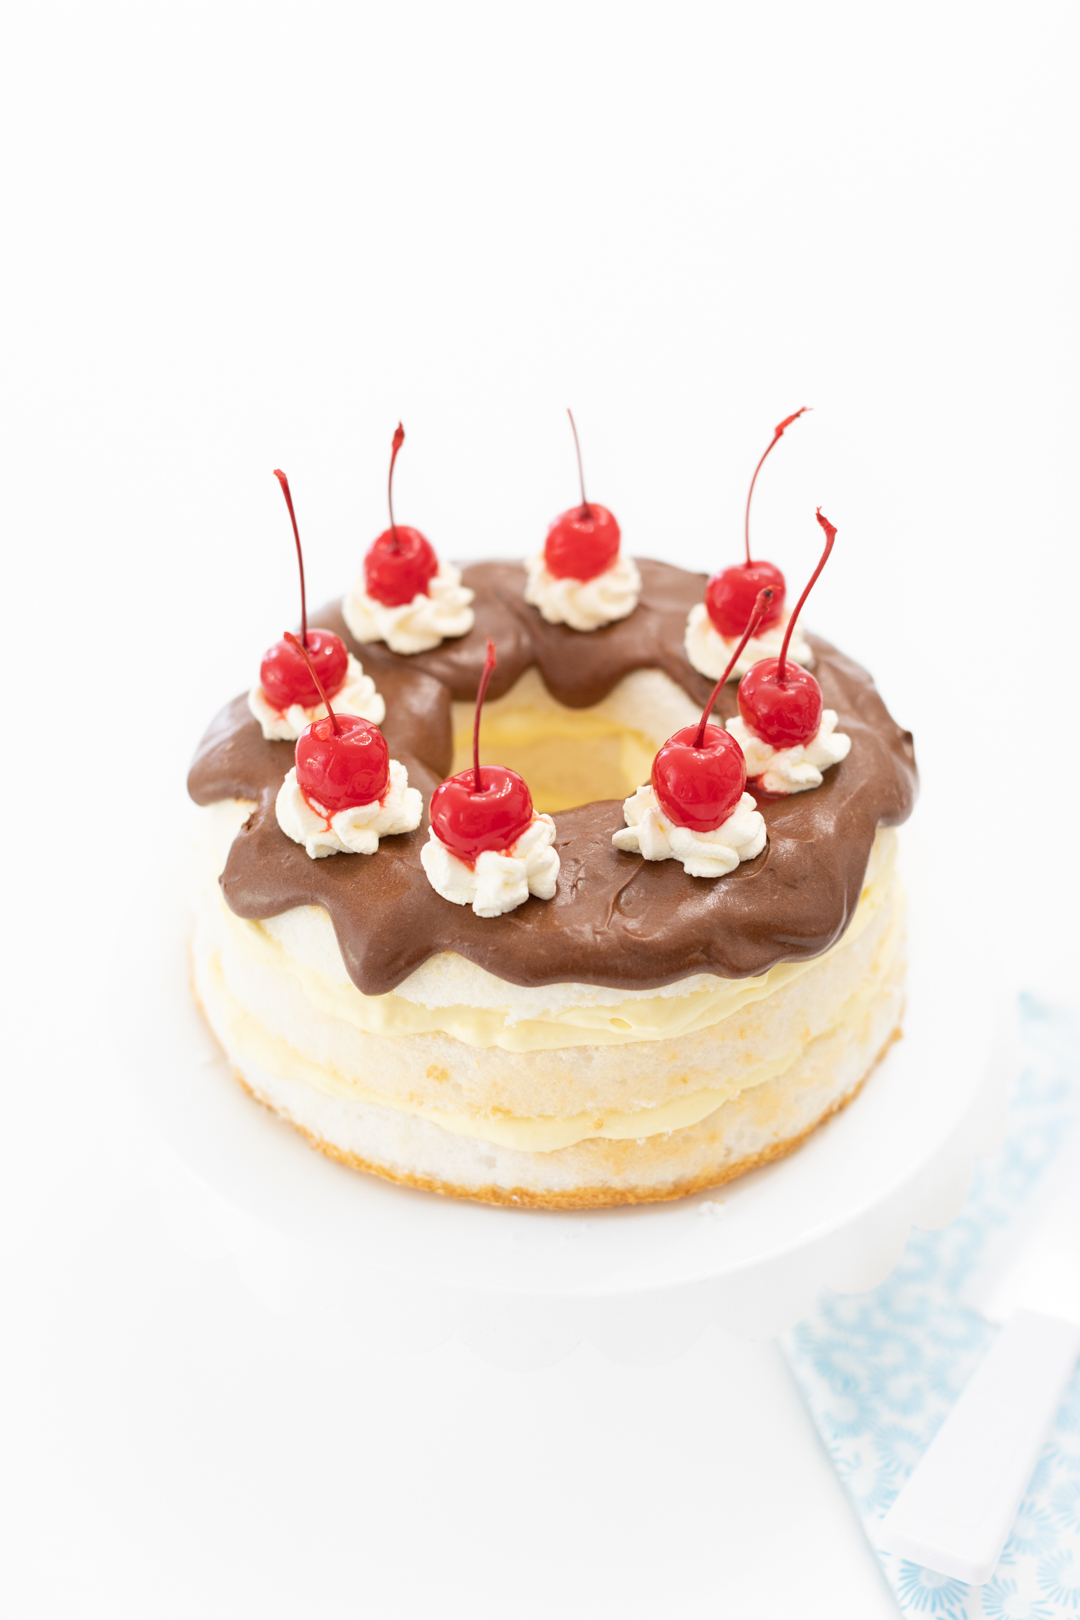 pretty chocolate covered cake with layers of pudding and topped with pretty cherries